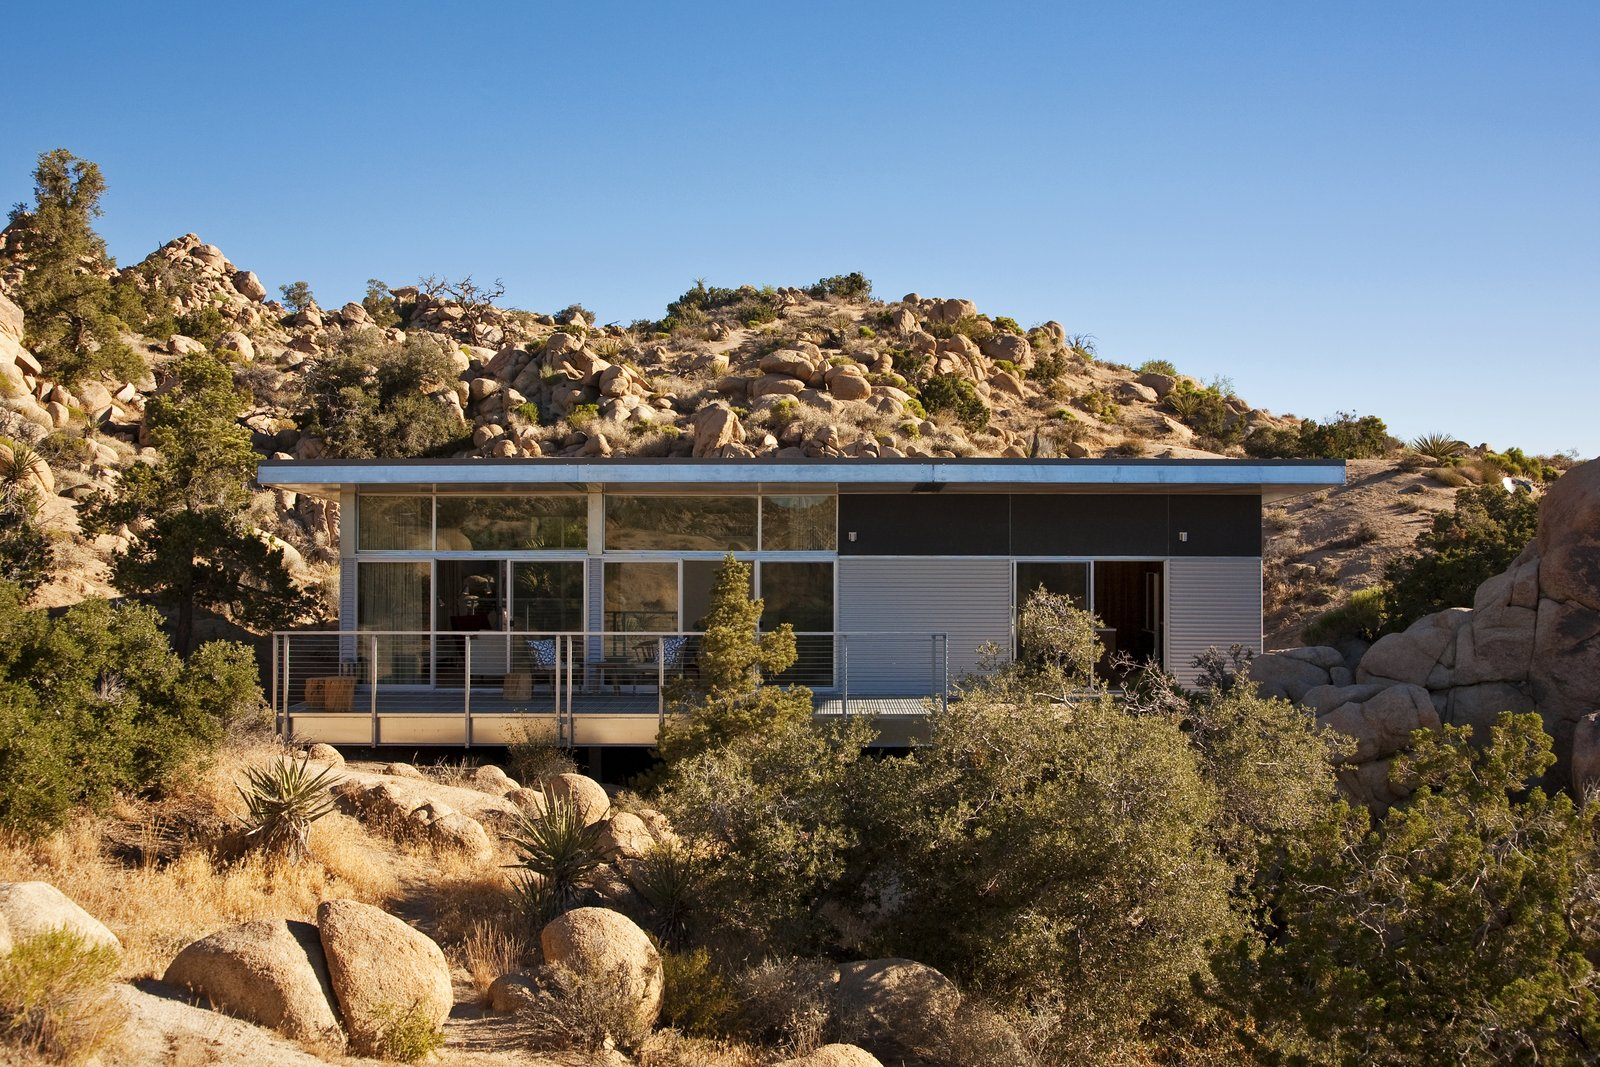 Beautiful Prefabs by Jill Southern from Offered at $674K, This Hybrid Prefab Is in Tune With the Californian Desert